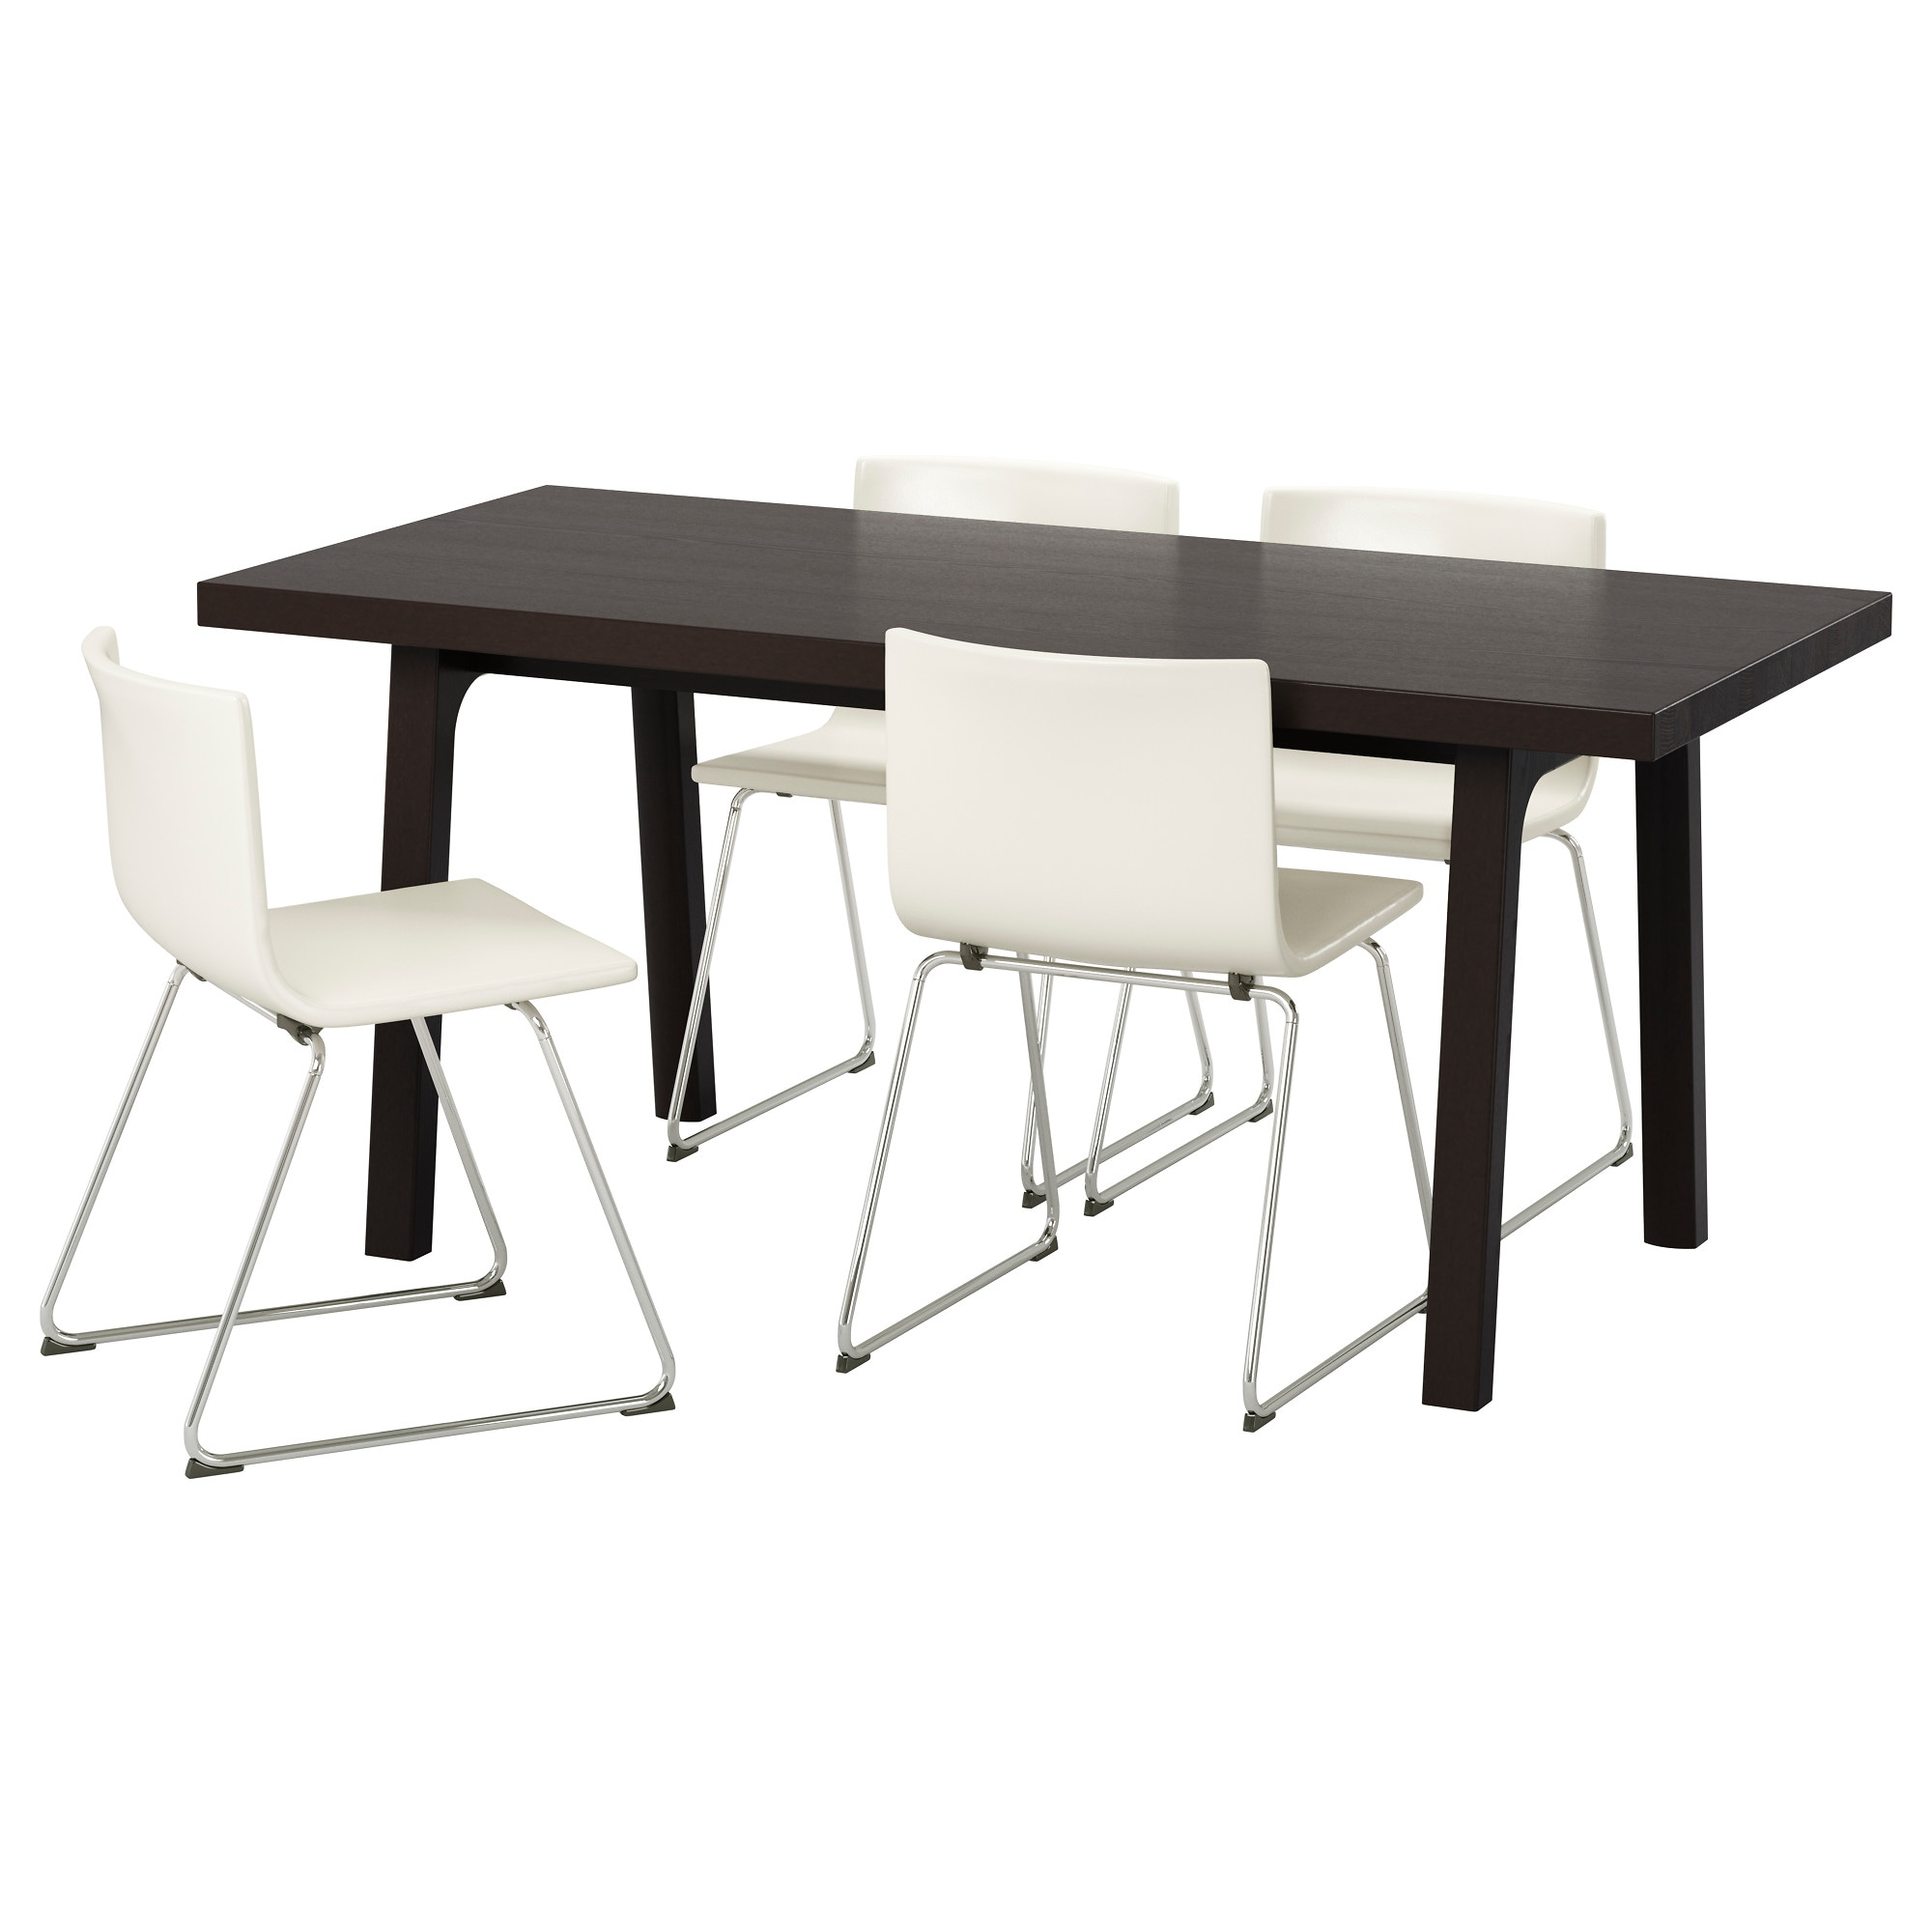 "V""STANBY V""STAN… BERNHARD Table and 4 chairs IKEA"